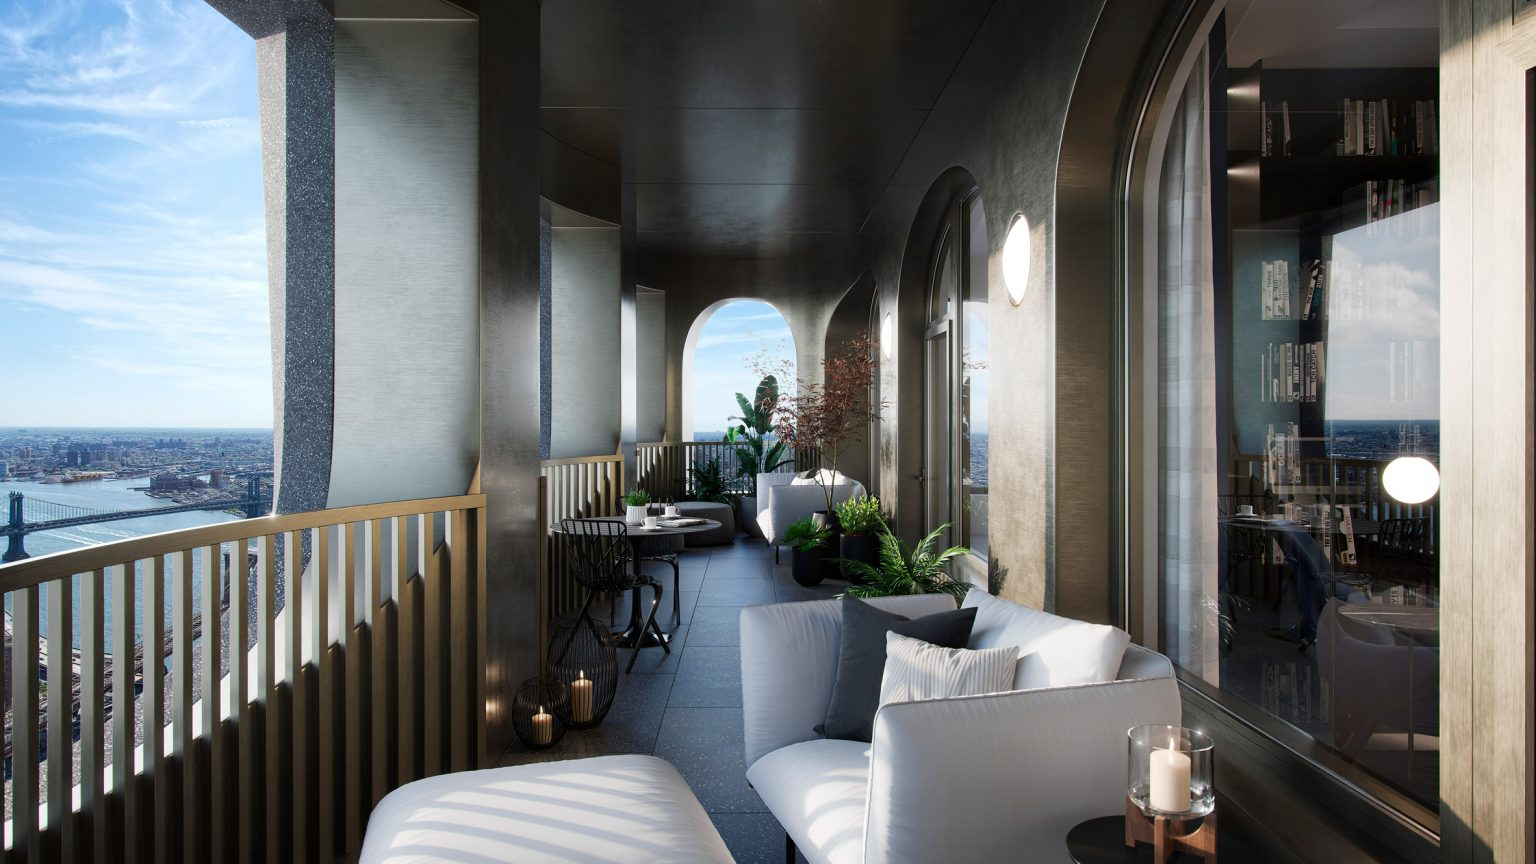 David Adjaye and Aston Martin design five residences in New York skyscraper 130 William - This Is What We Are Reading For You